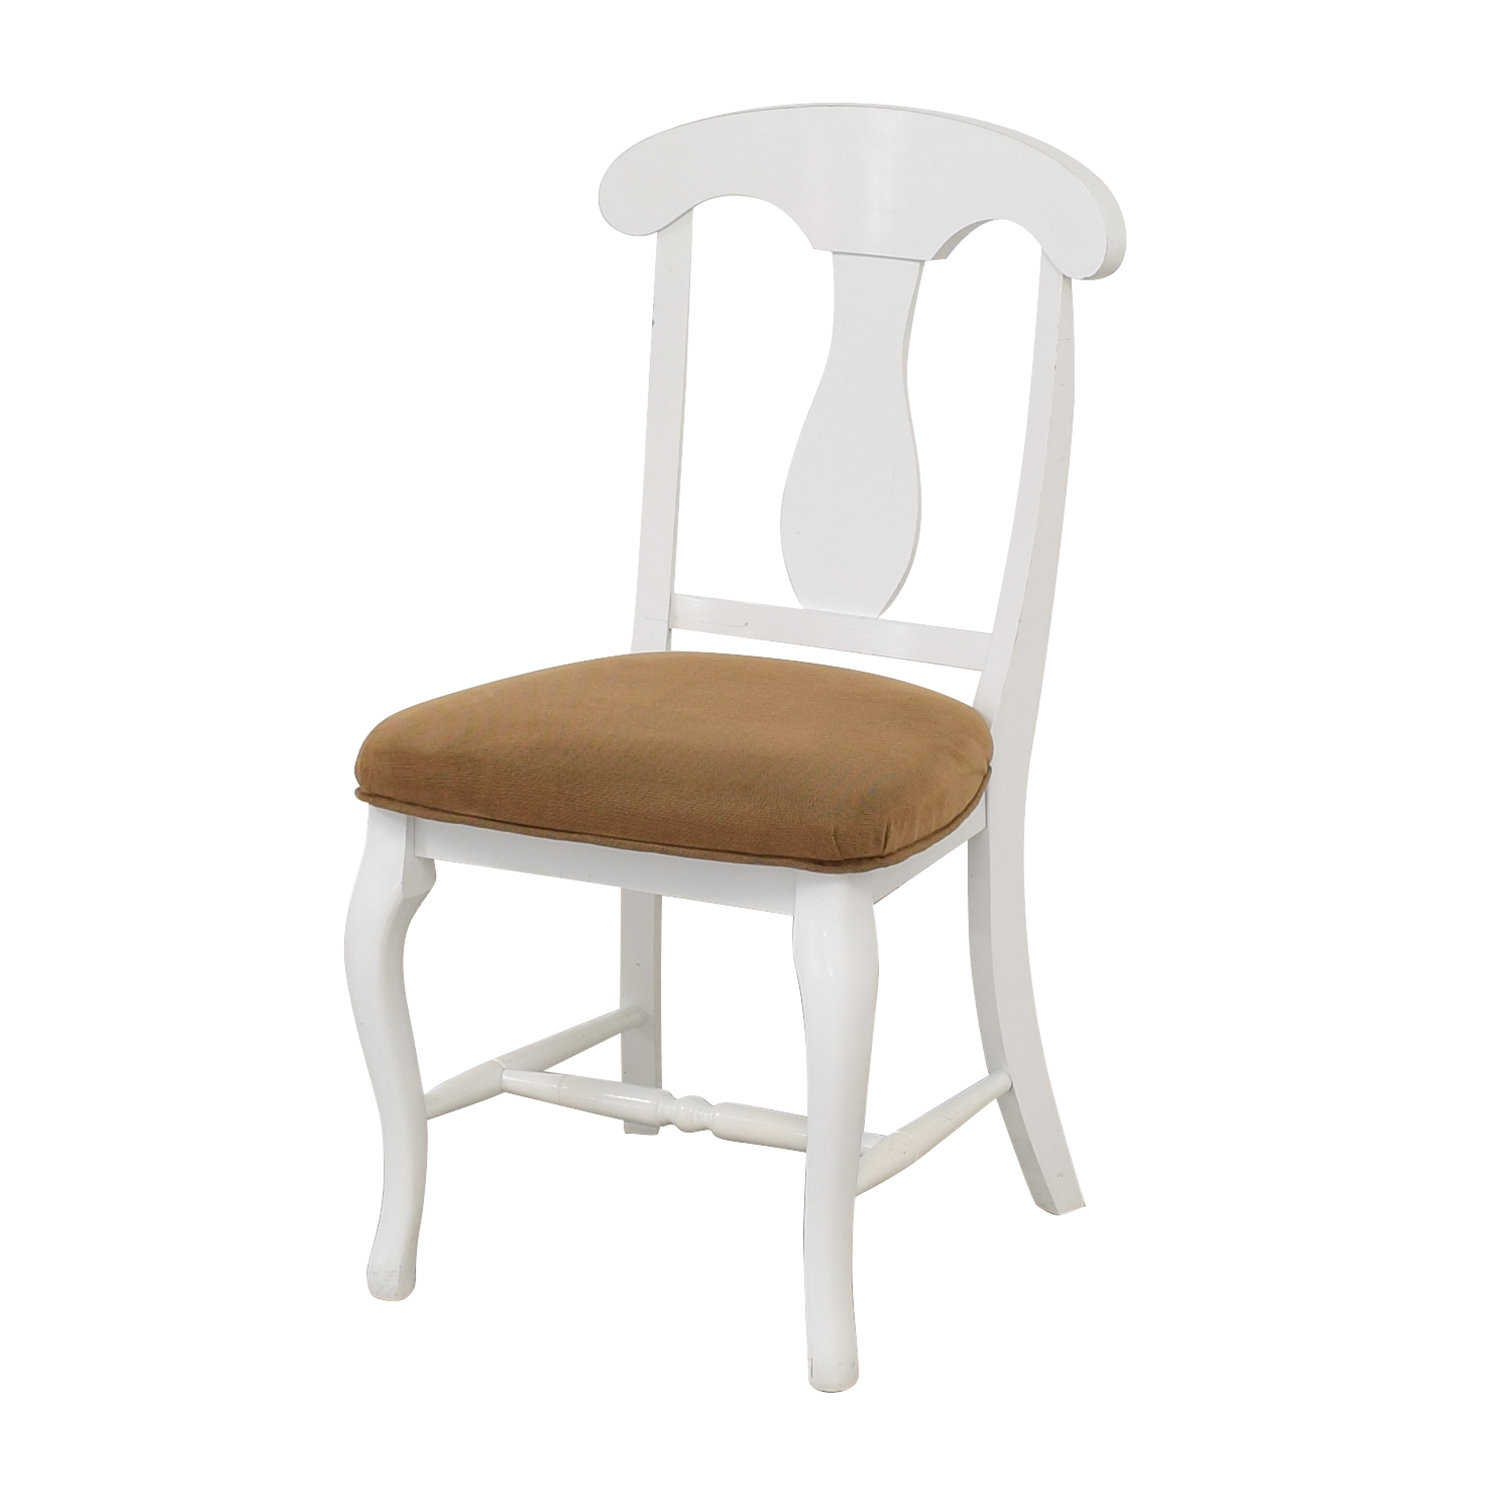 Canadel Canadel Upholstered Dining Chairs dimensions